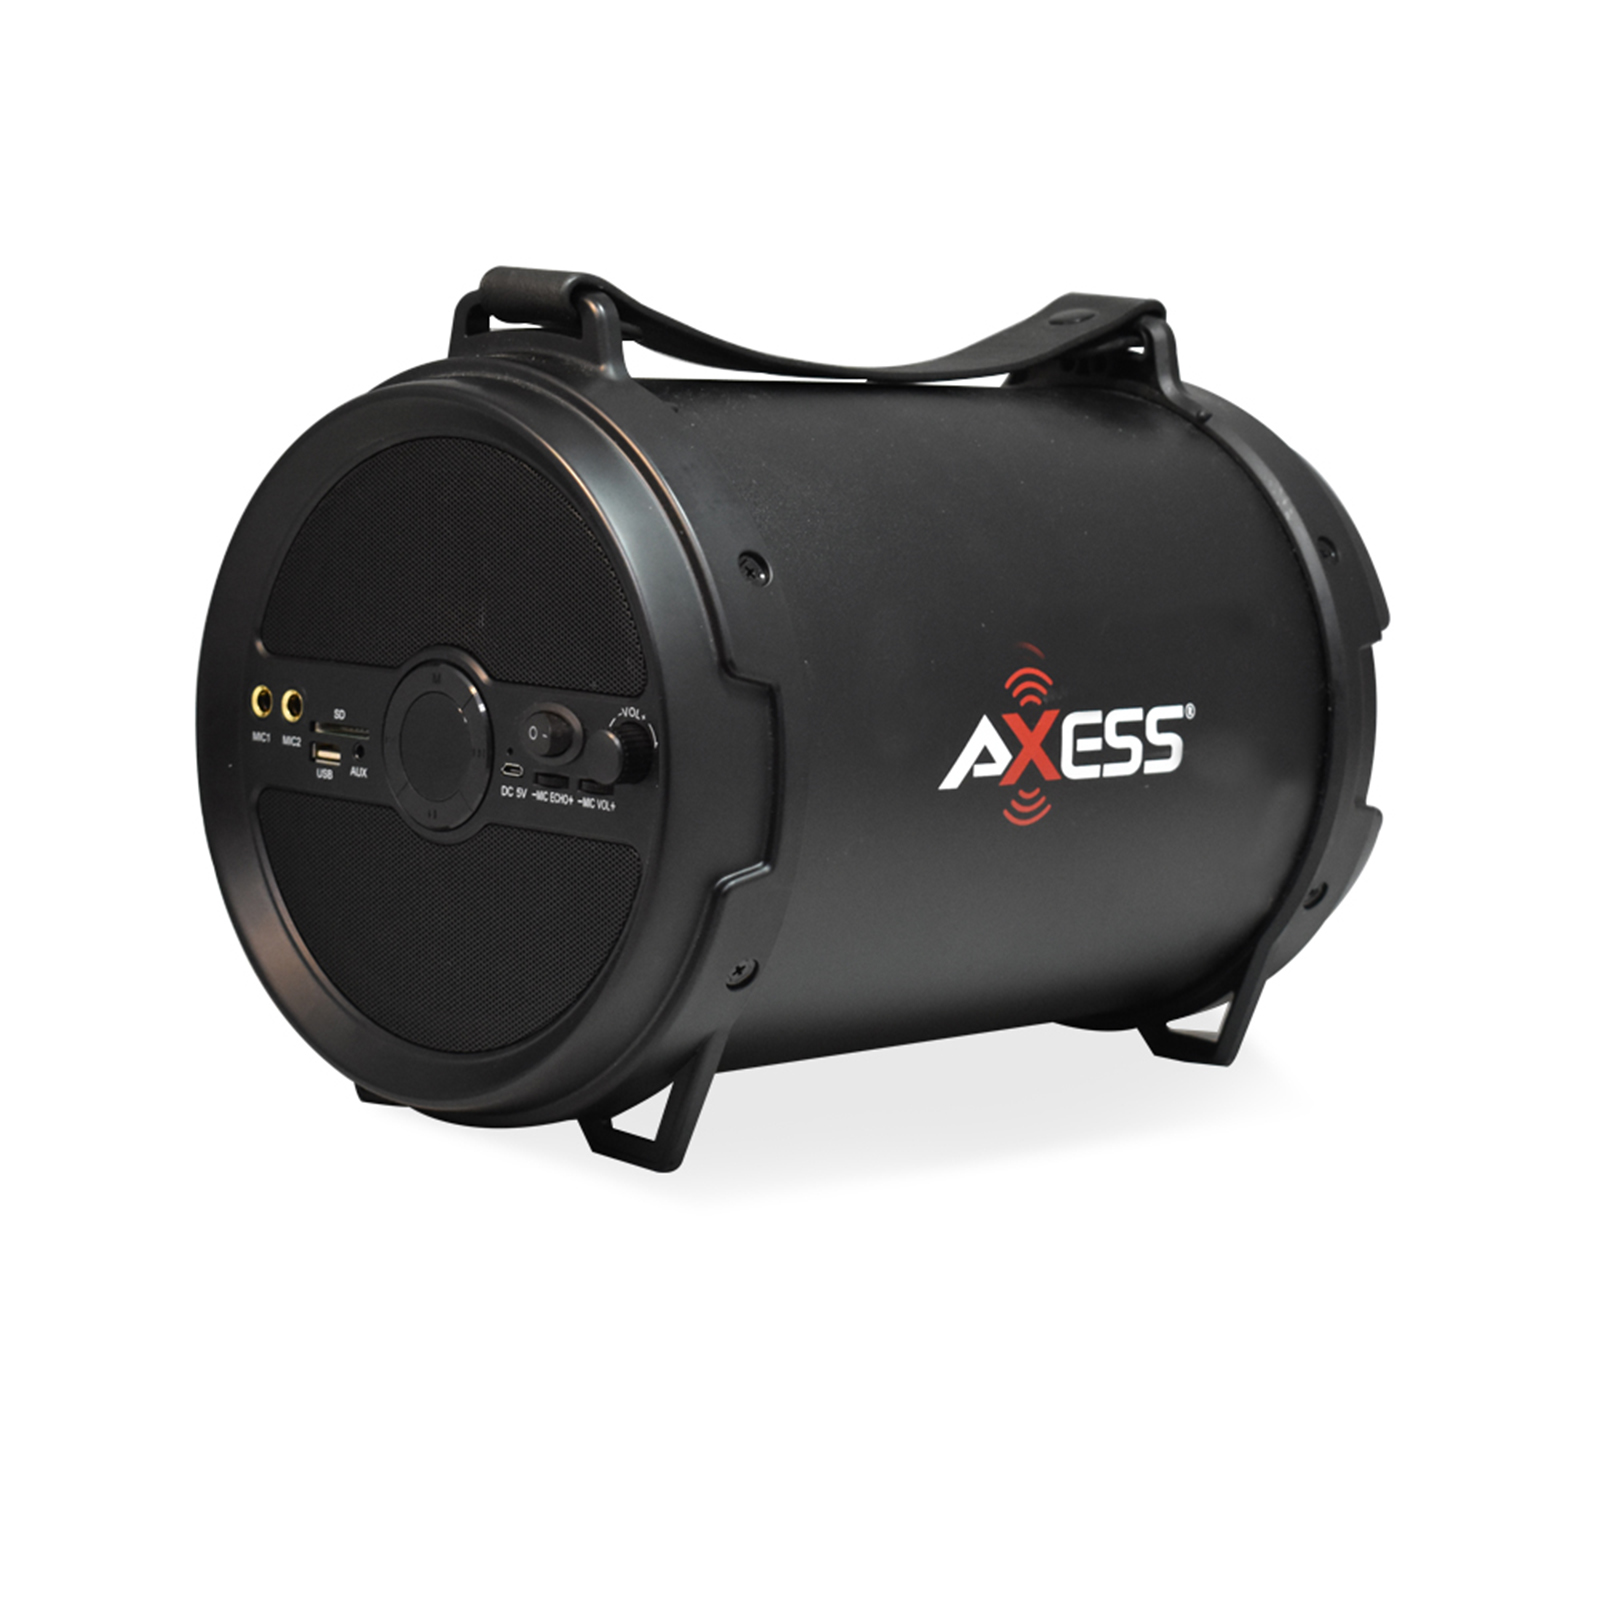 Axxess BT Media Speaker with 6 Inch Speaker and 2 Microphone Inputs in Black